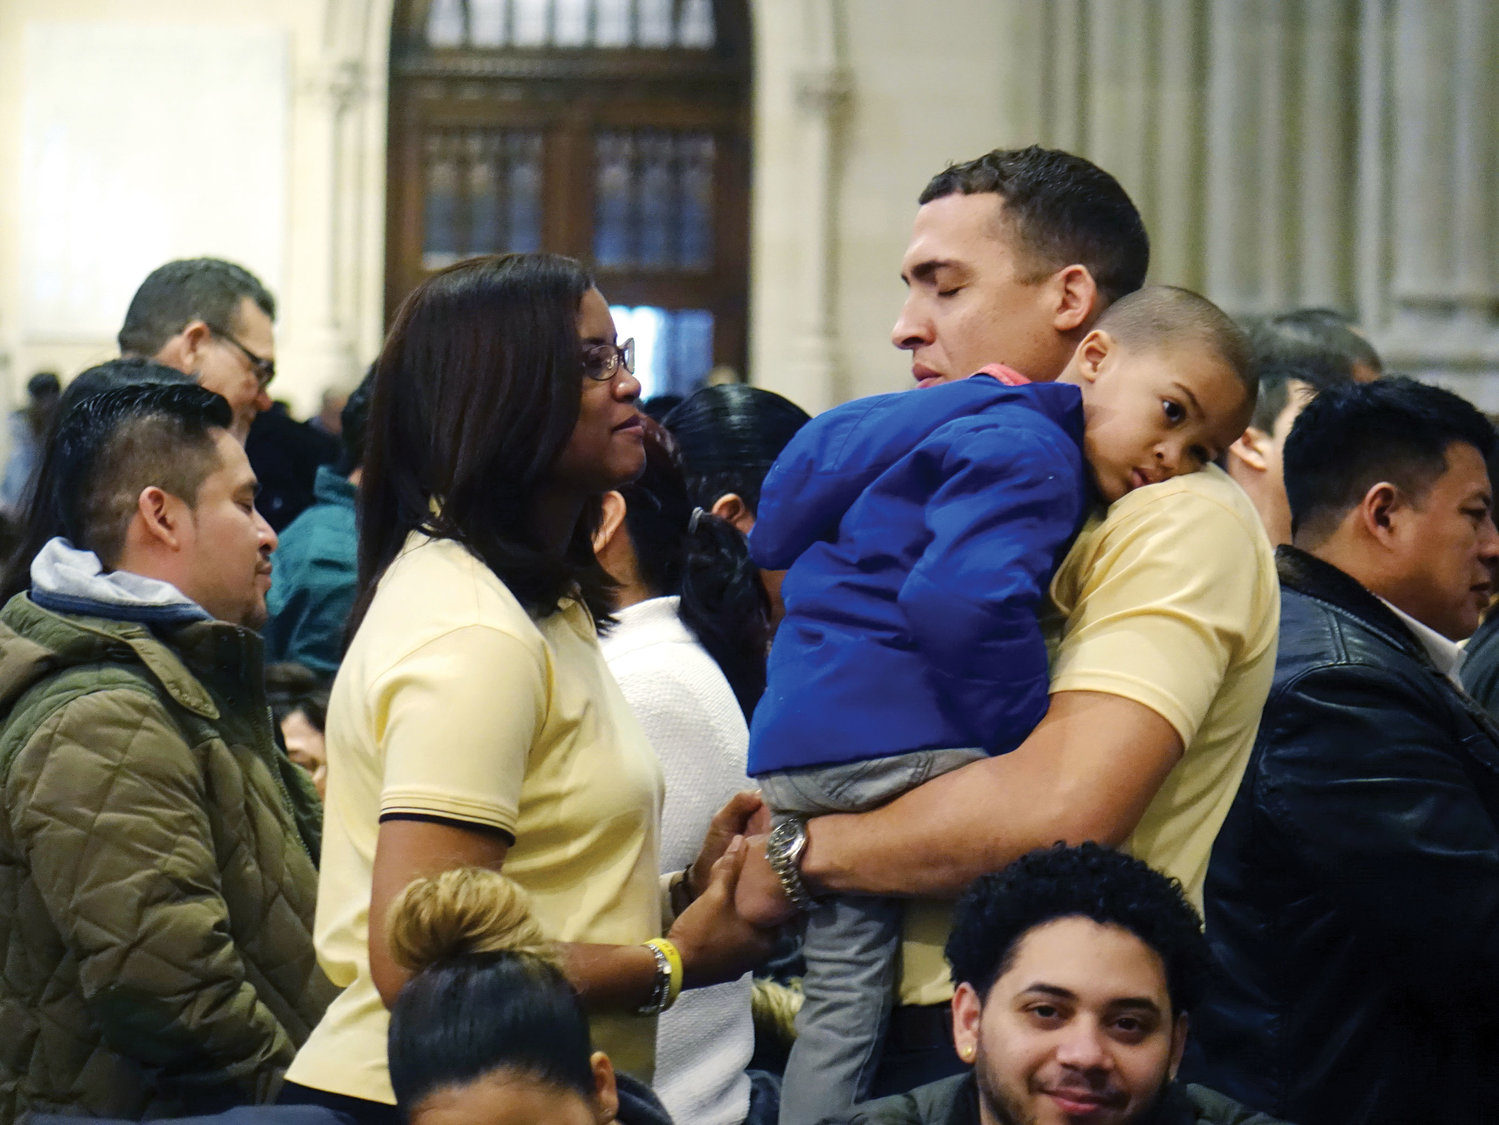 The annual World Marriage Day Mass for Hispanic/Latino couples was offered at St. Patrick's Cathedral Feb. 10. An estimated 550 couples participated this year; many of the couples were accompanied by their children.